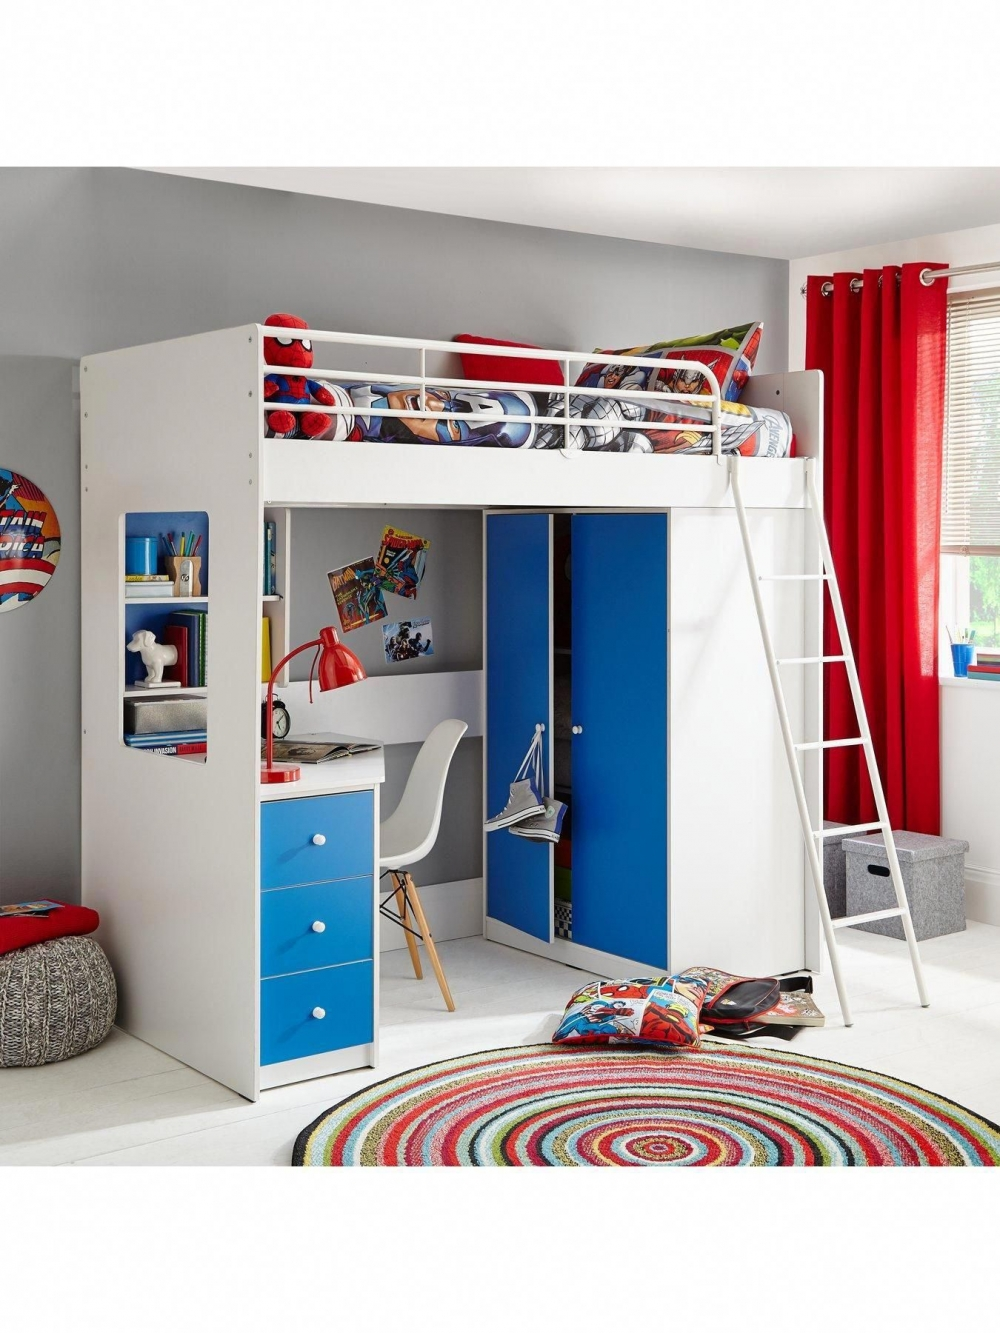 of bunk bed with desk and drawers on bunk bed with desk and drawers post on 2020-12-20 14:17:18